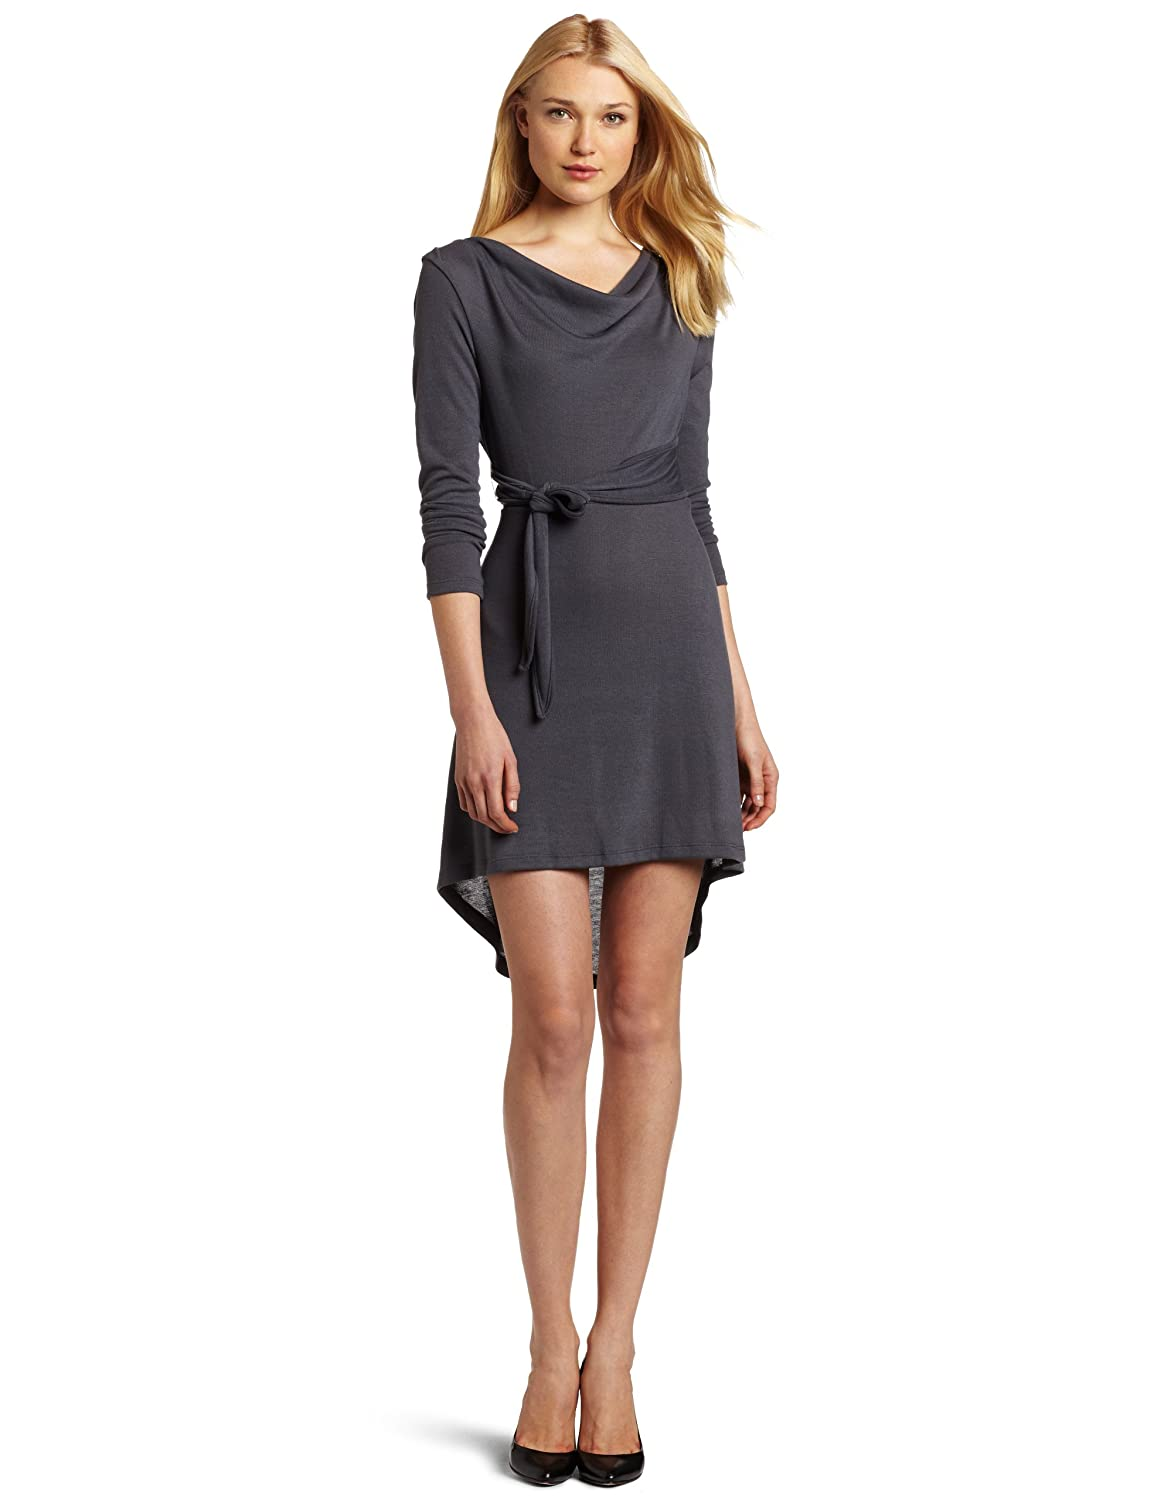 Wrap Dresses. Since Diane von Furstenberg first released her iconic wrap dress, wrap dresses have become a staple of women's wardrobes. The wrap dress allows a woman to look polished and put together with a minimum of effort, in a style that flatters almost every body type.